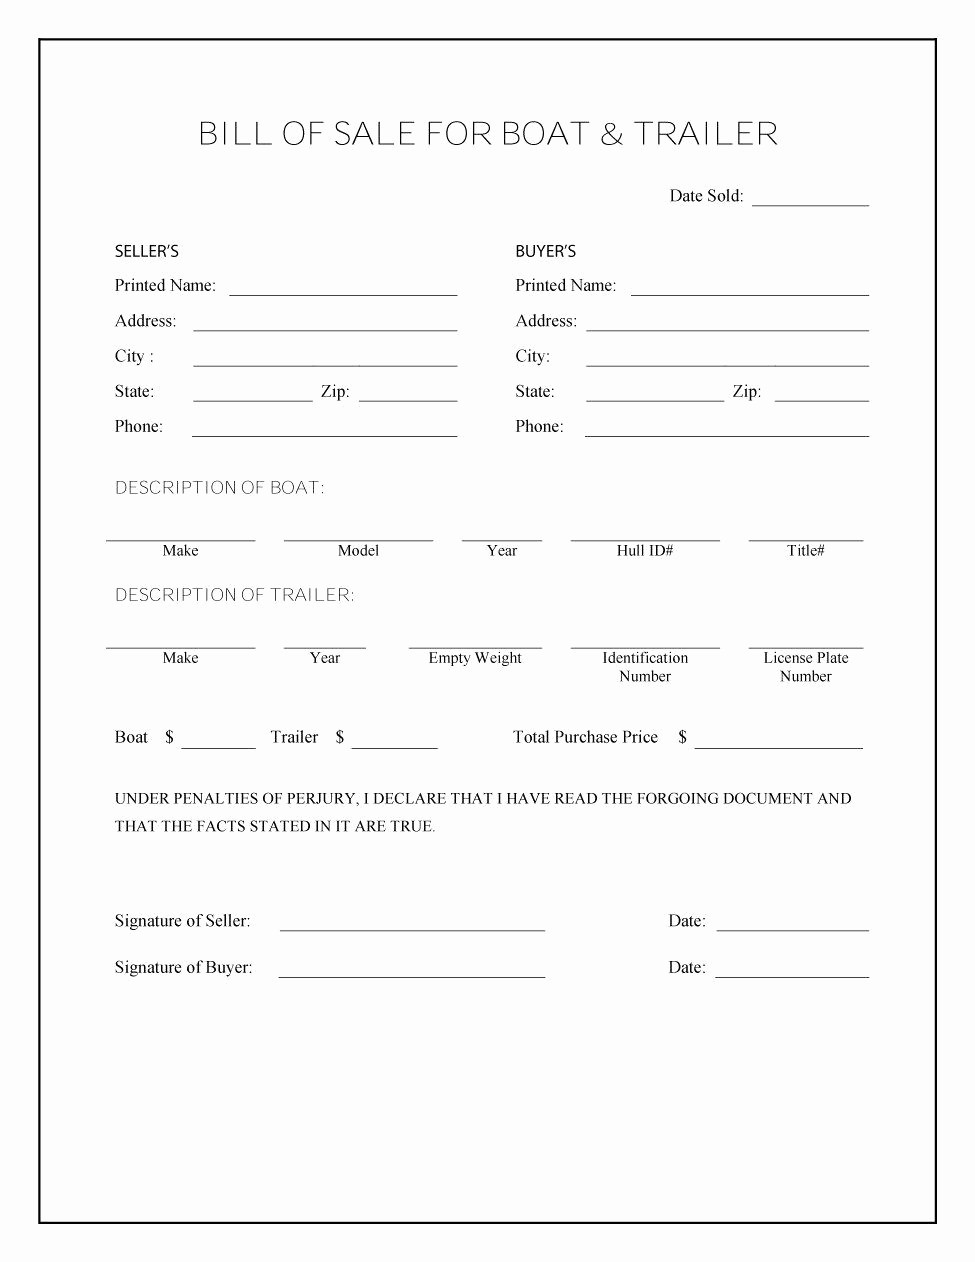 Bill Of Sale Sample form Lovely 45 Fee Printable Bill Of Sale Templates Car Boat Gun